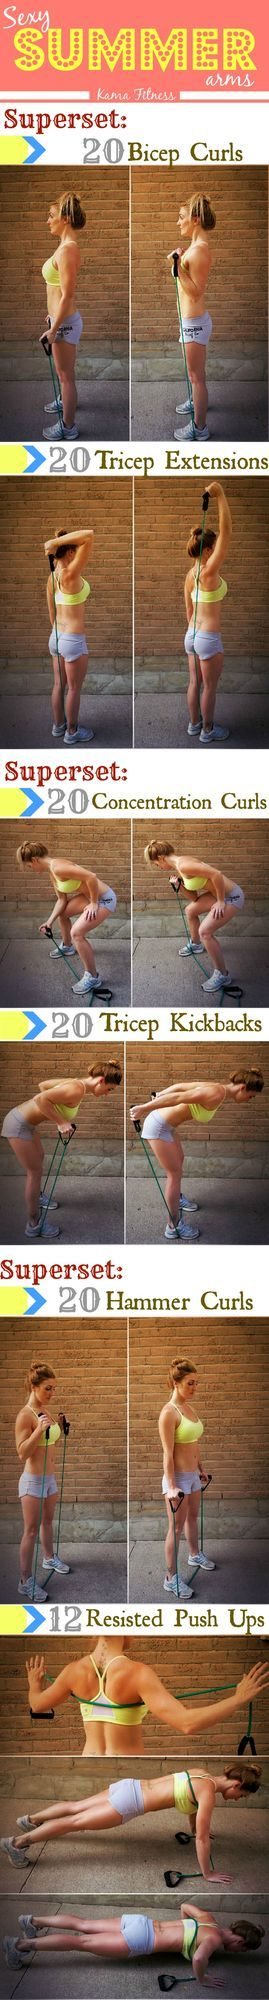 This workout is going to enhance your arms so you can feel confident while wearing that tank top of yours. Or bikini, you know. & guys, I know you like arm workouts so here you go. Switch up your dail